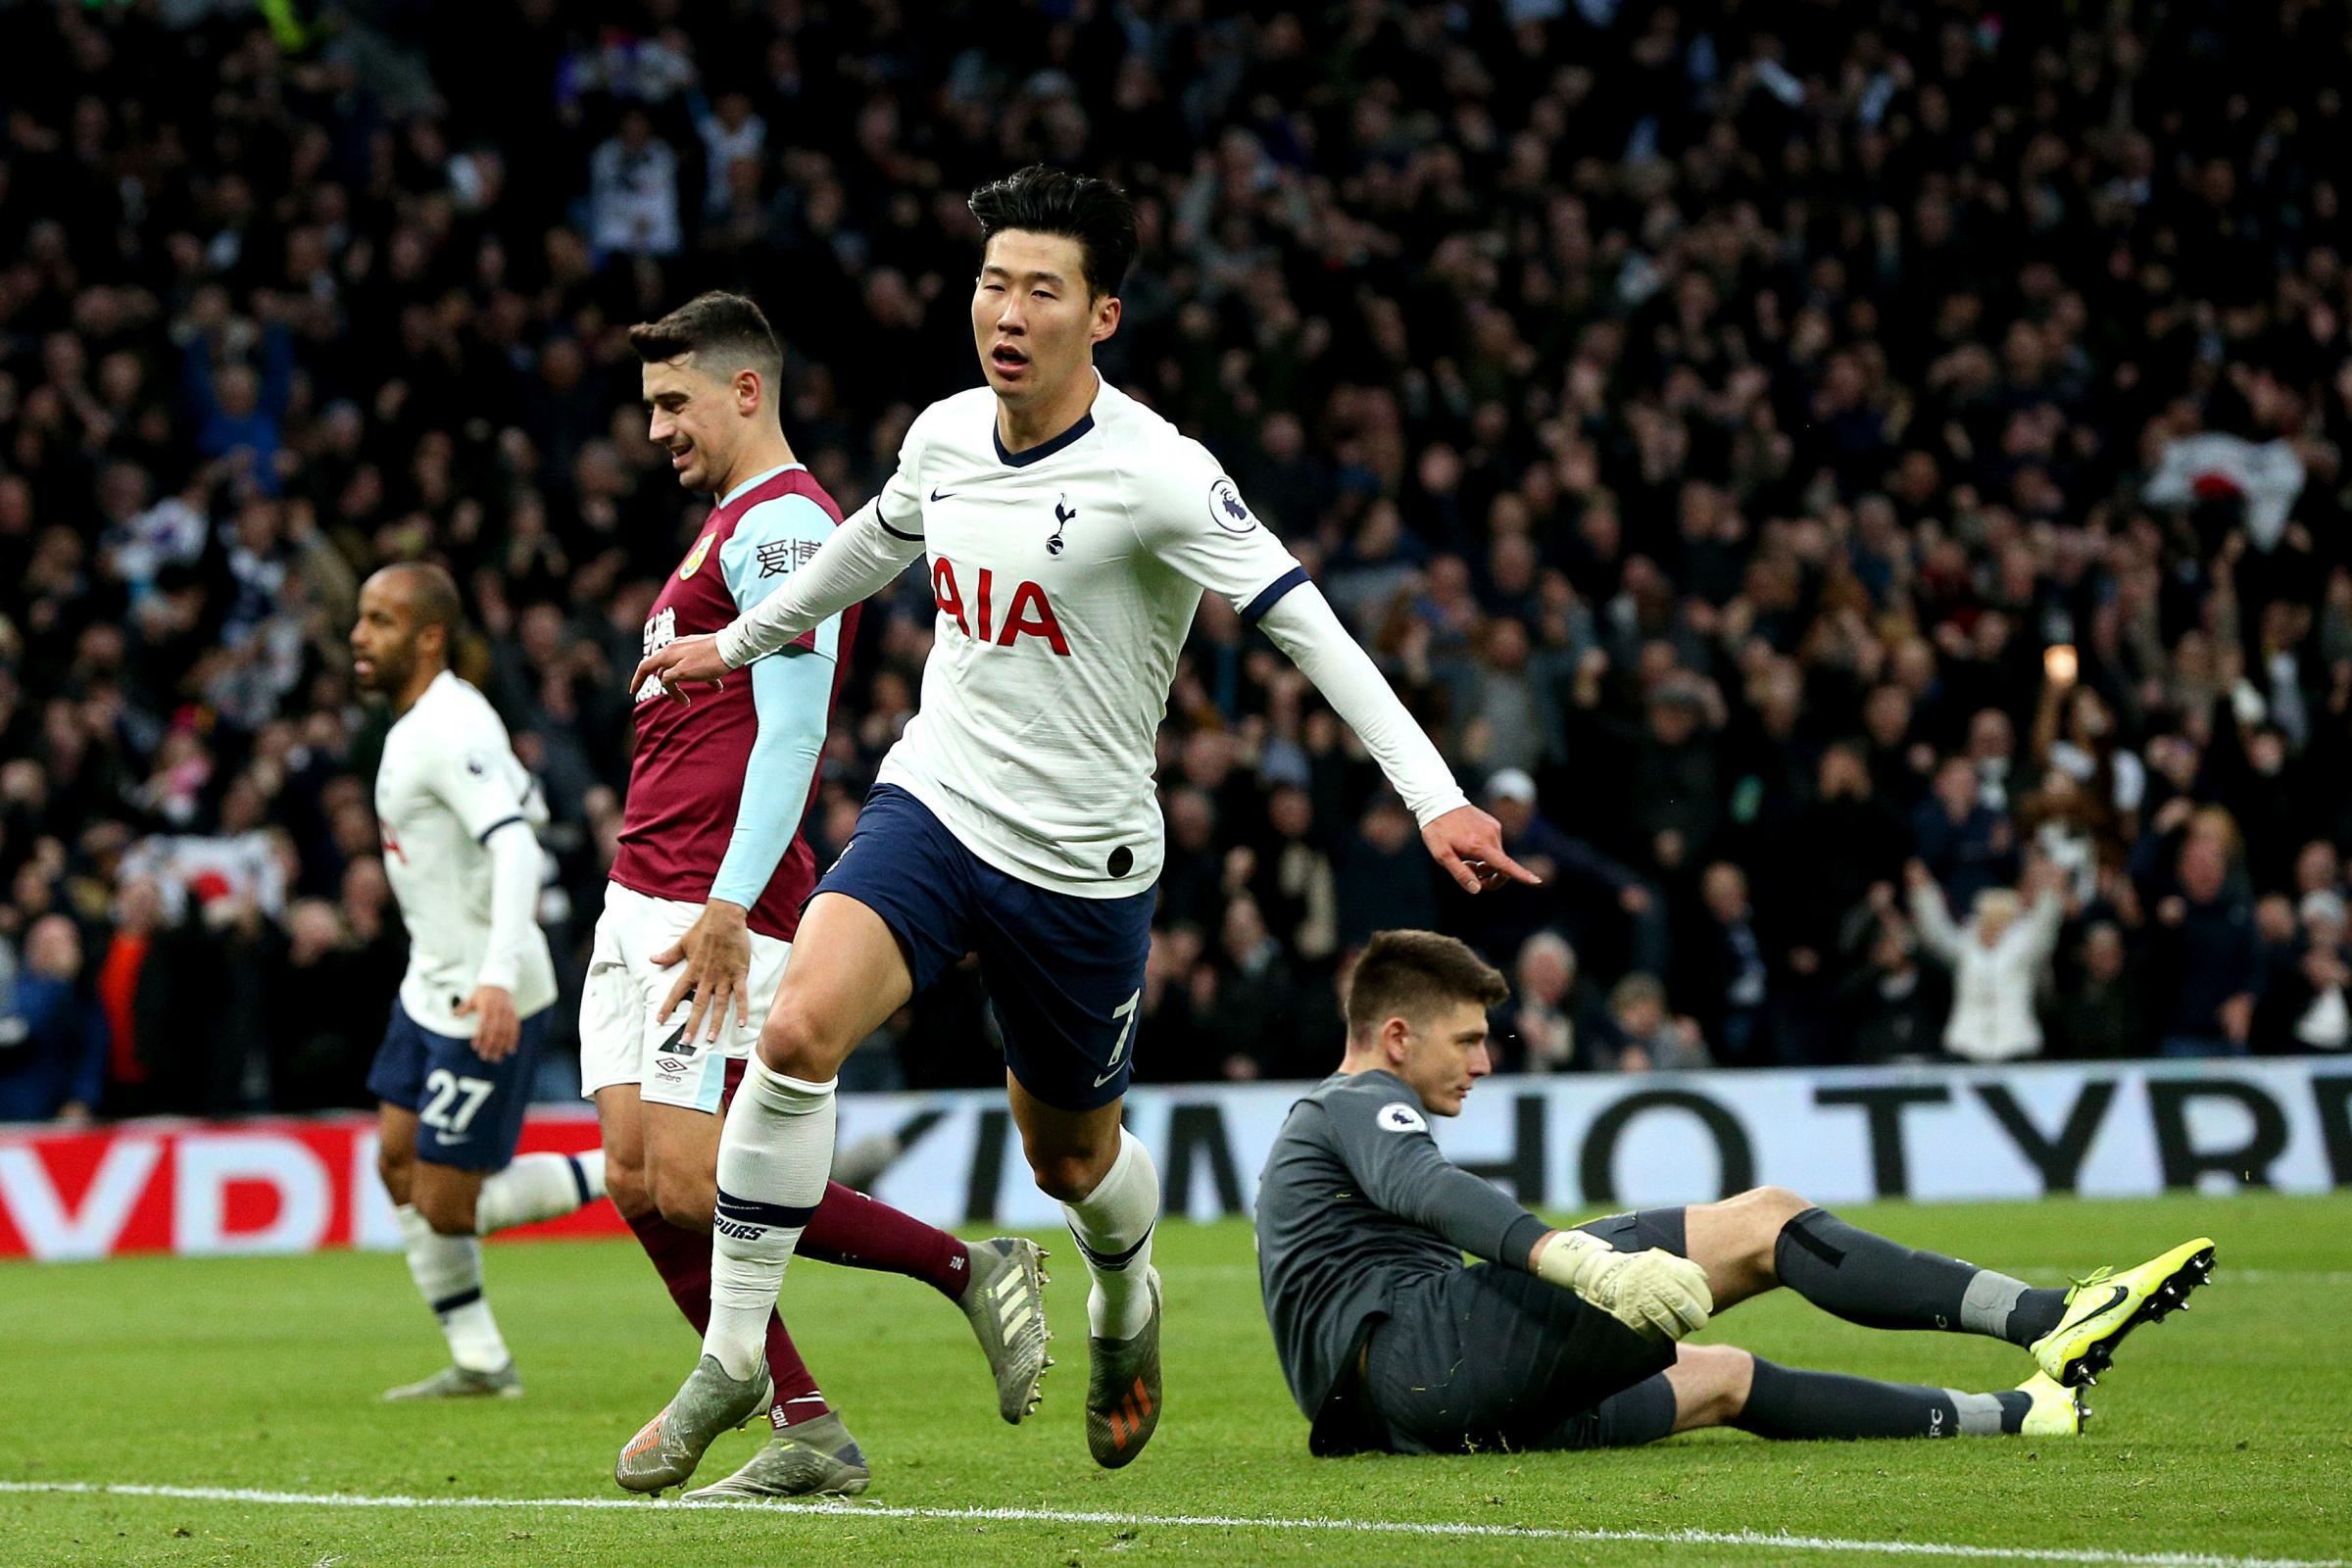 Burnley fan, 13, allegedly racially abused Son Heung-min